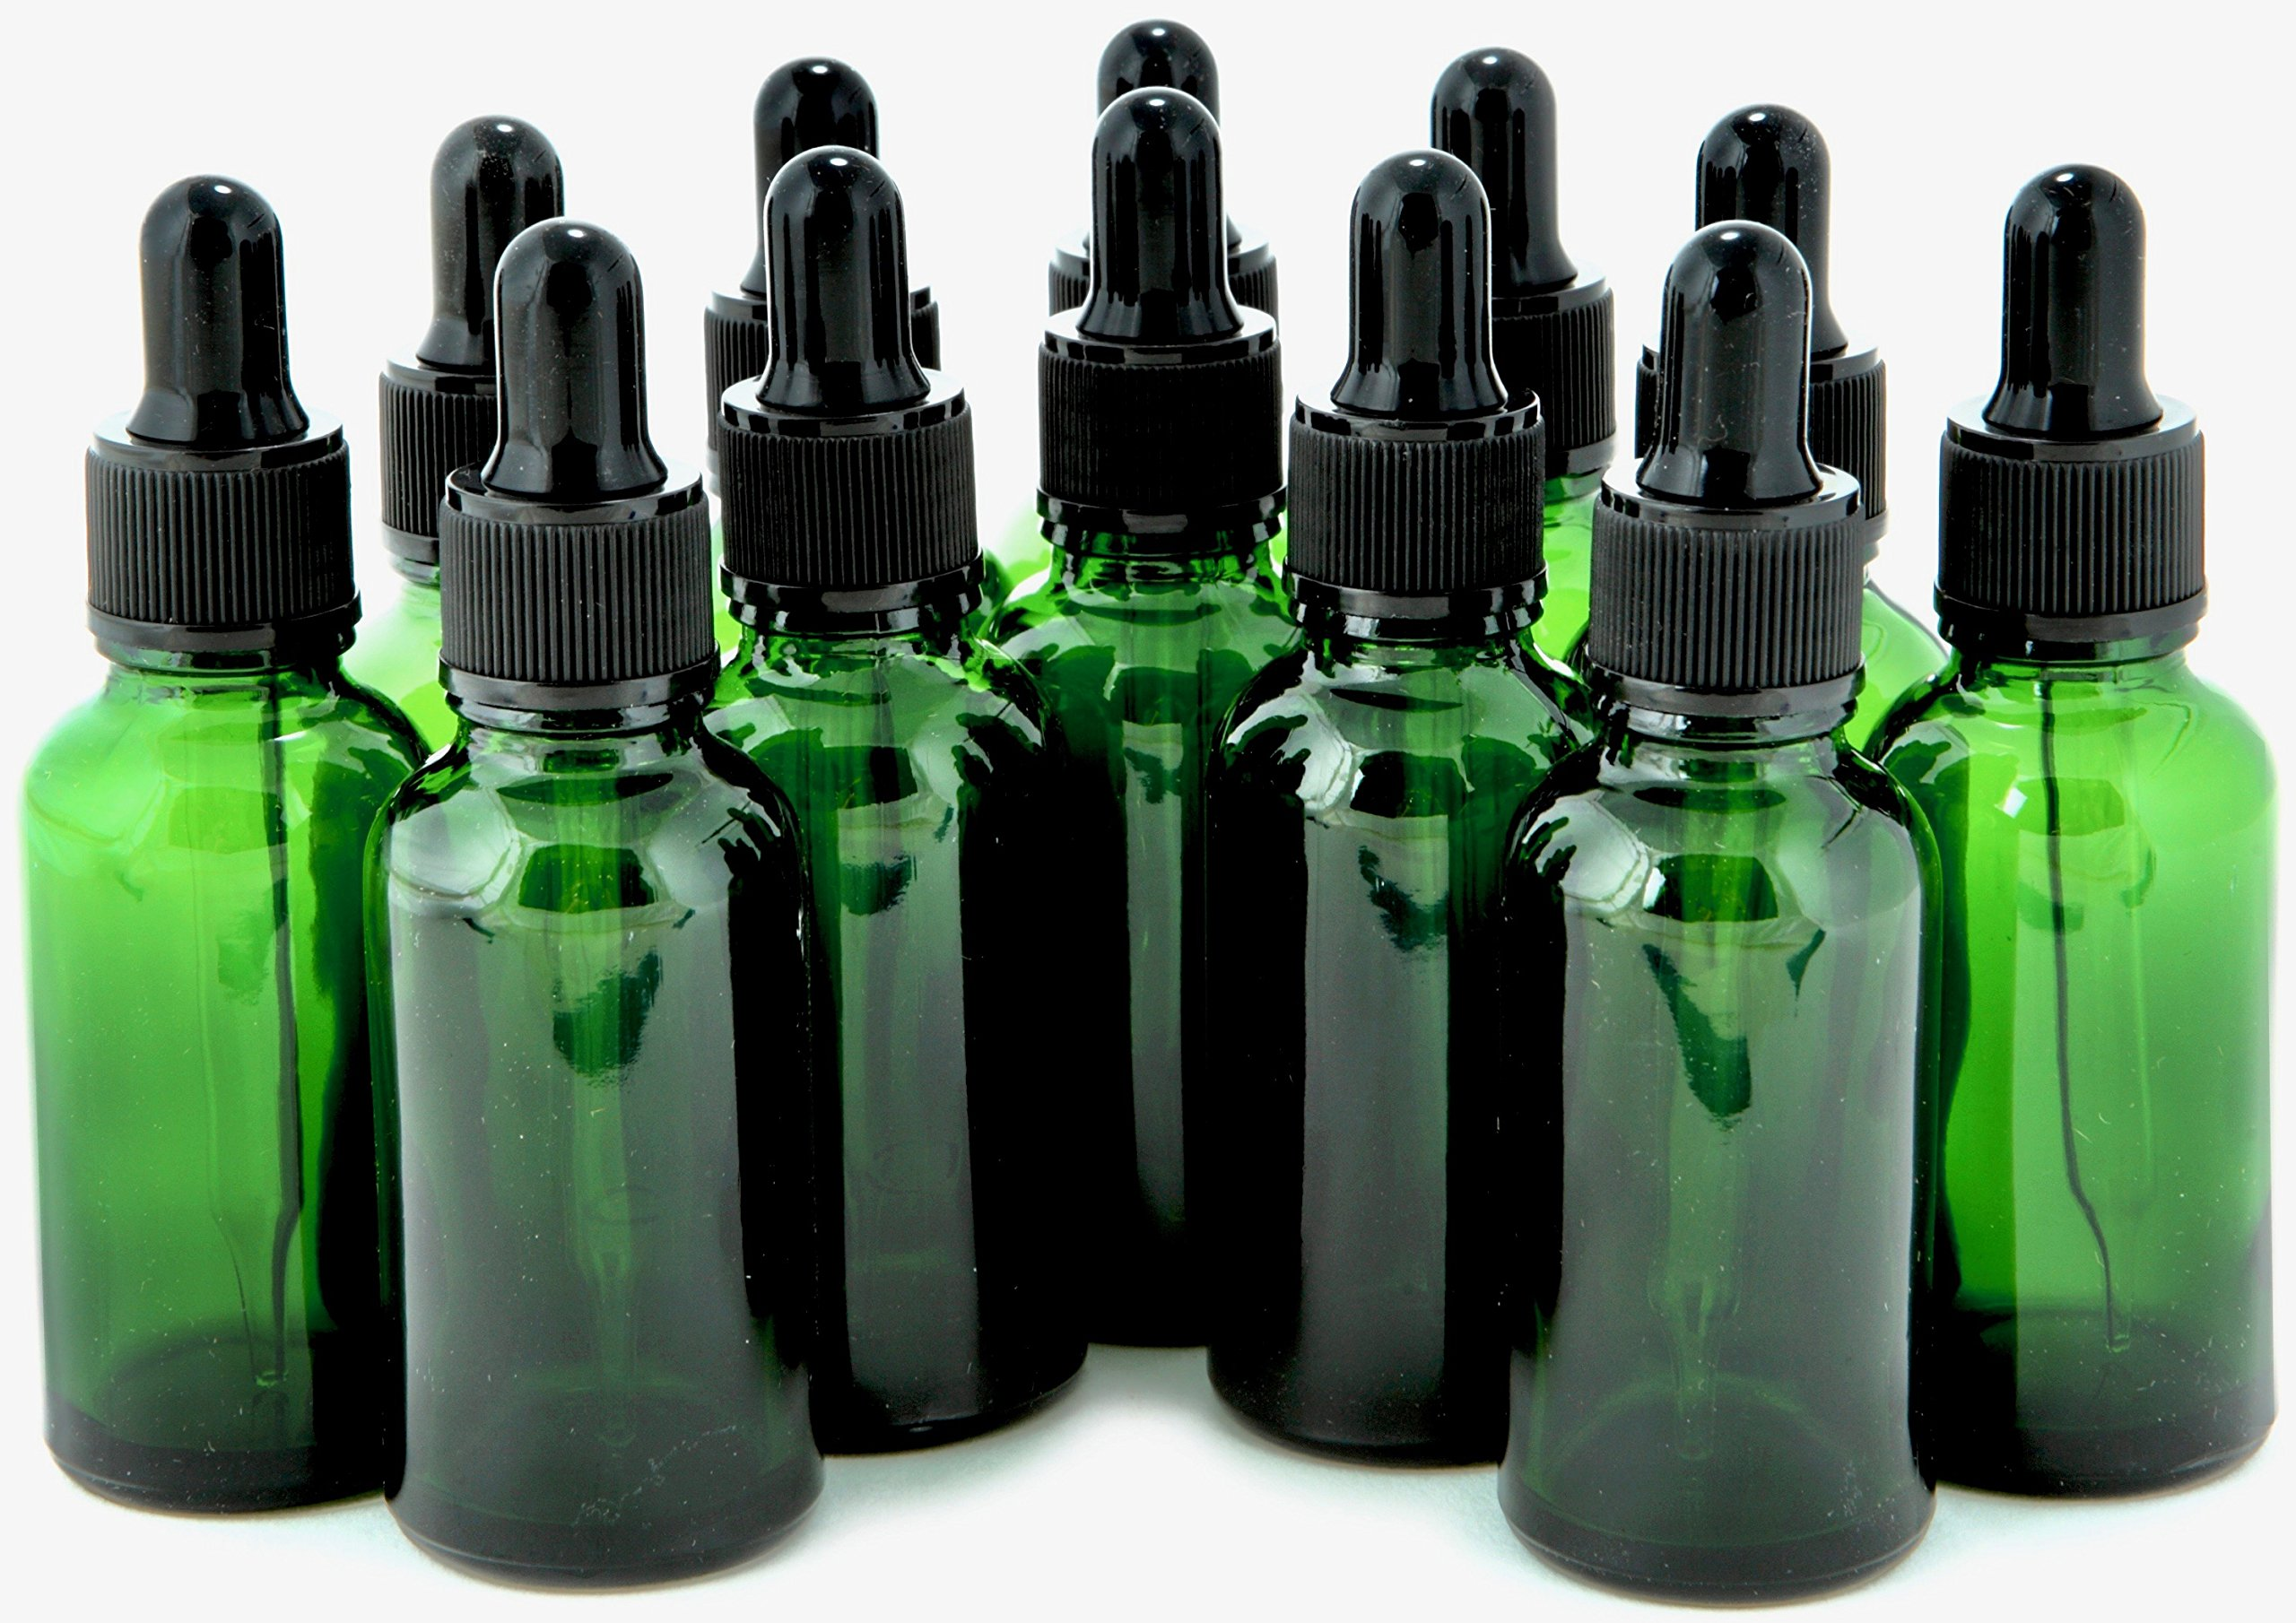 Vivaplex Green Glass Bottles Droppers